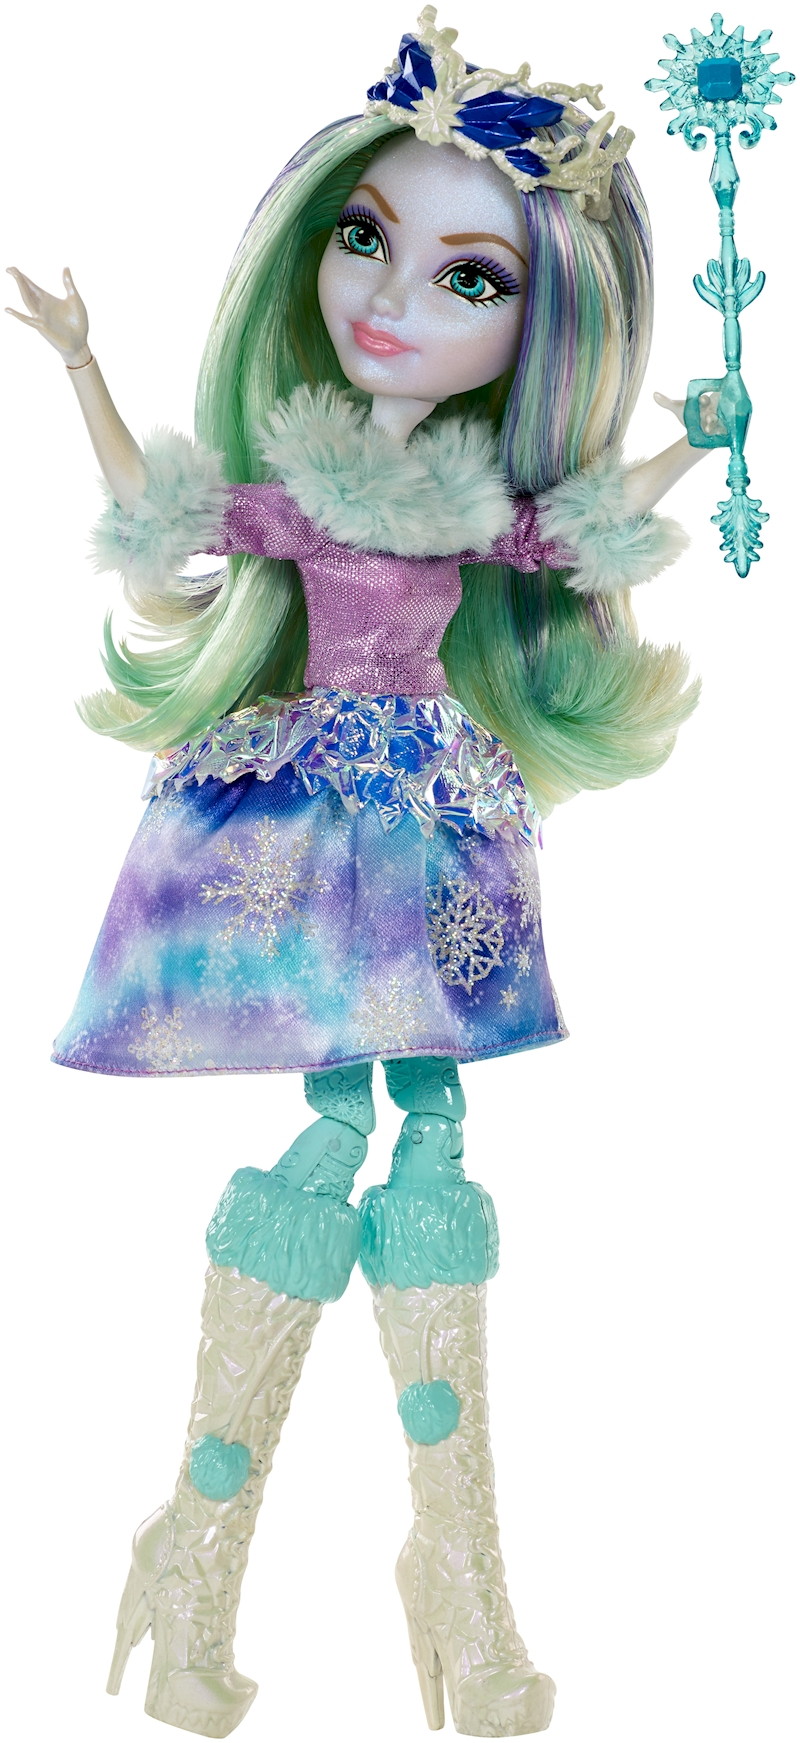 Amazoncom Ever After High Legacy Day Briar Beauty Doll